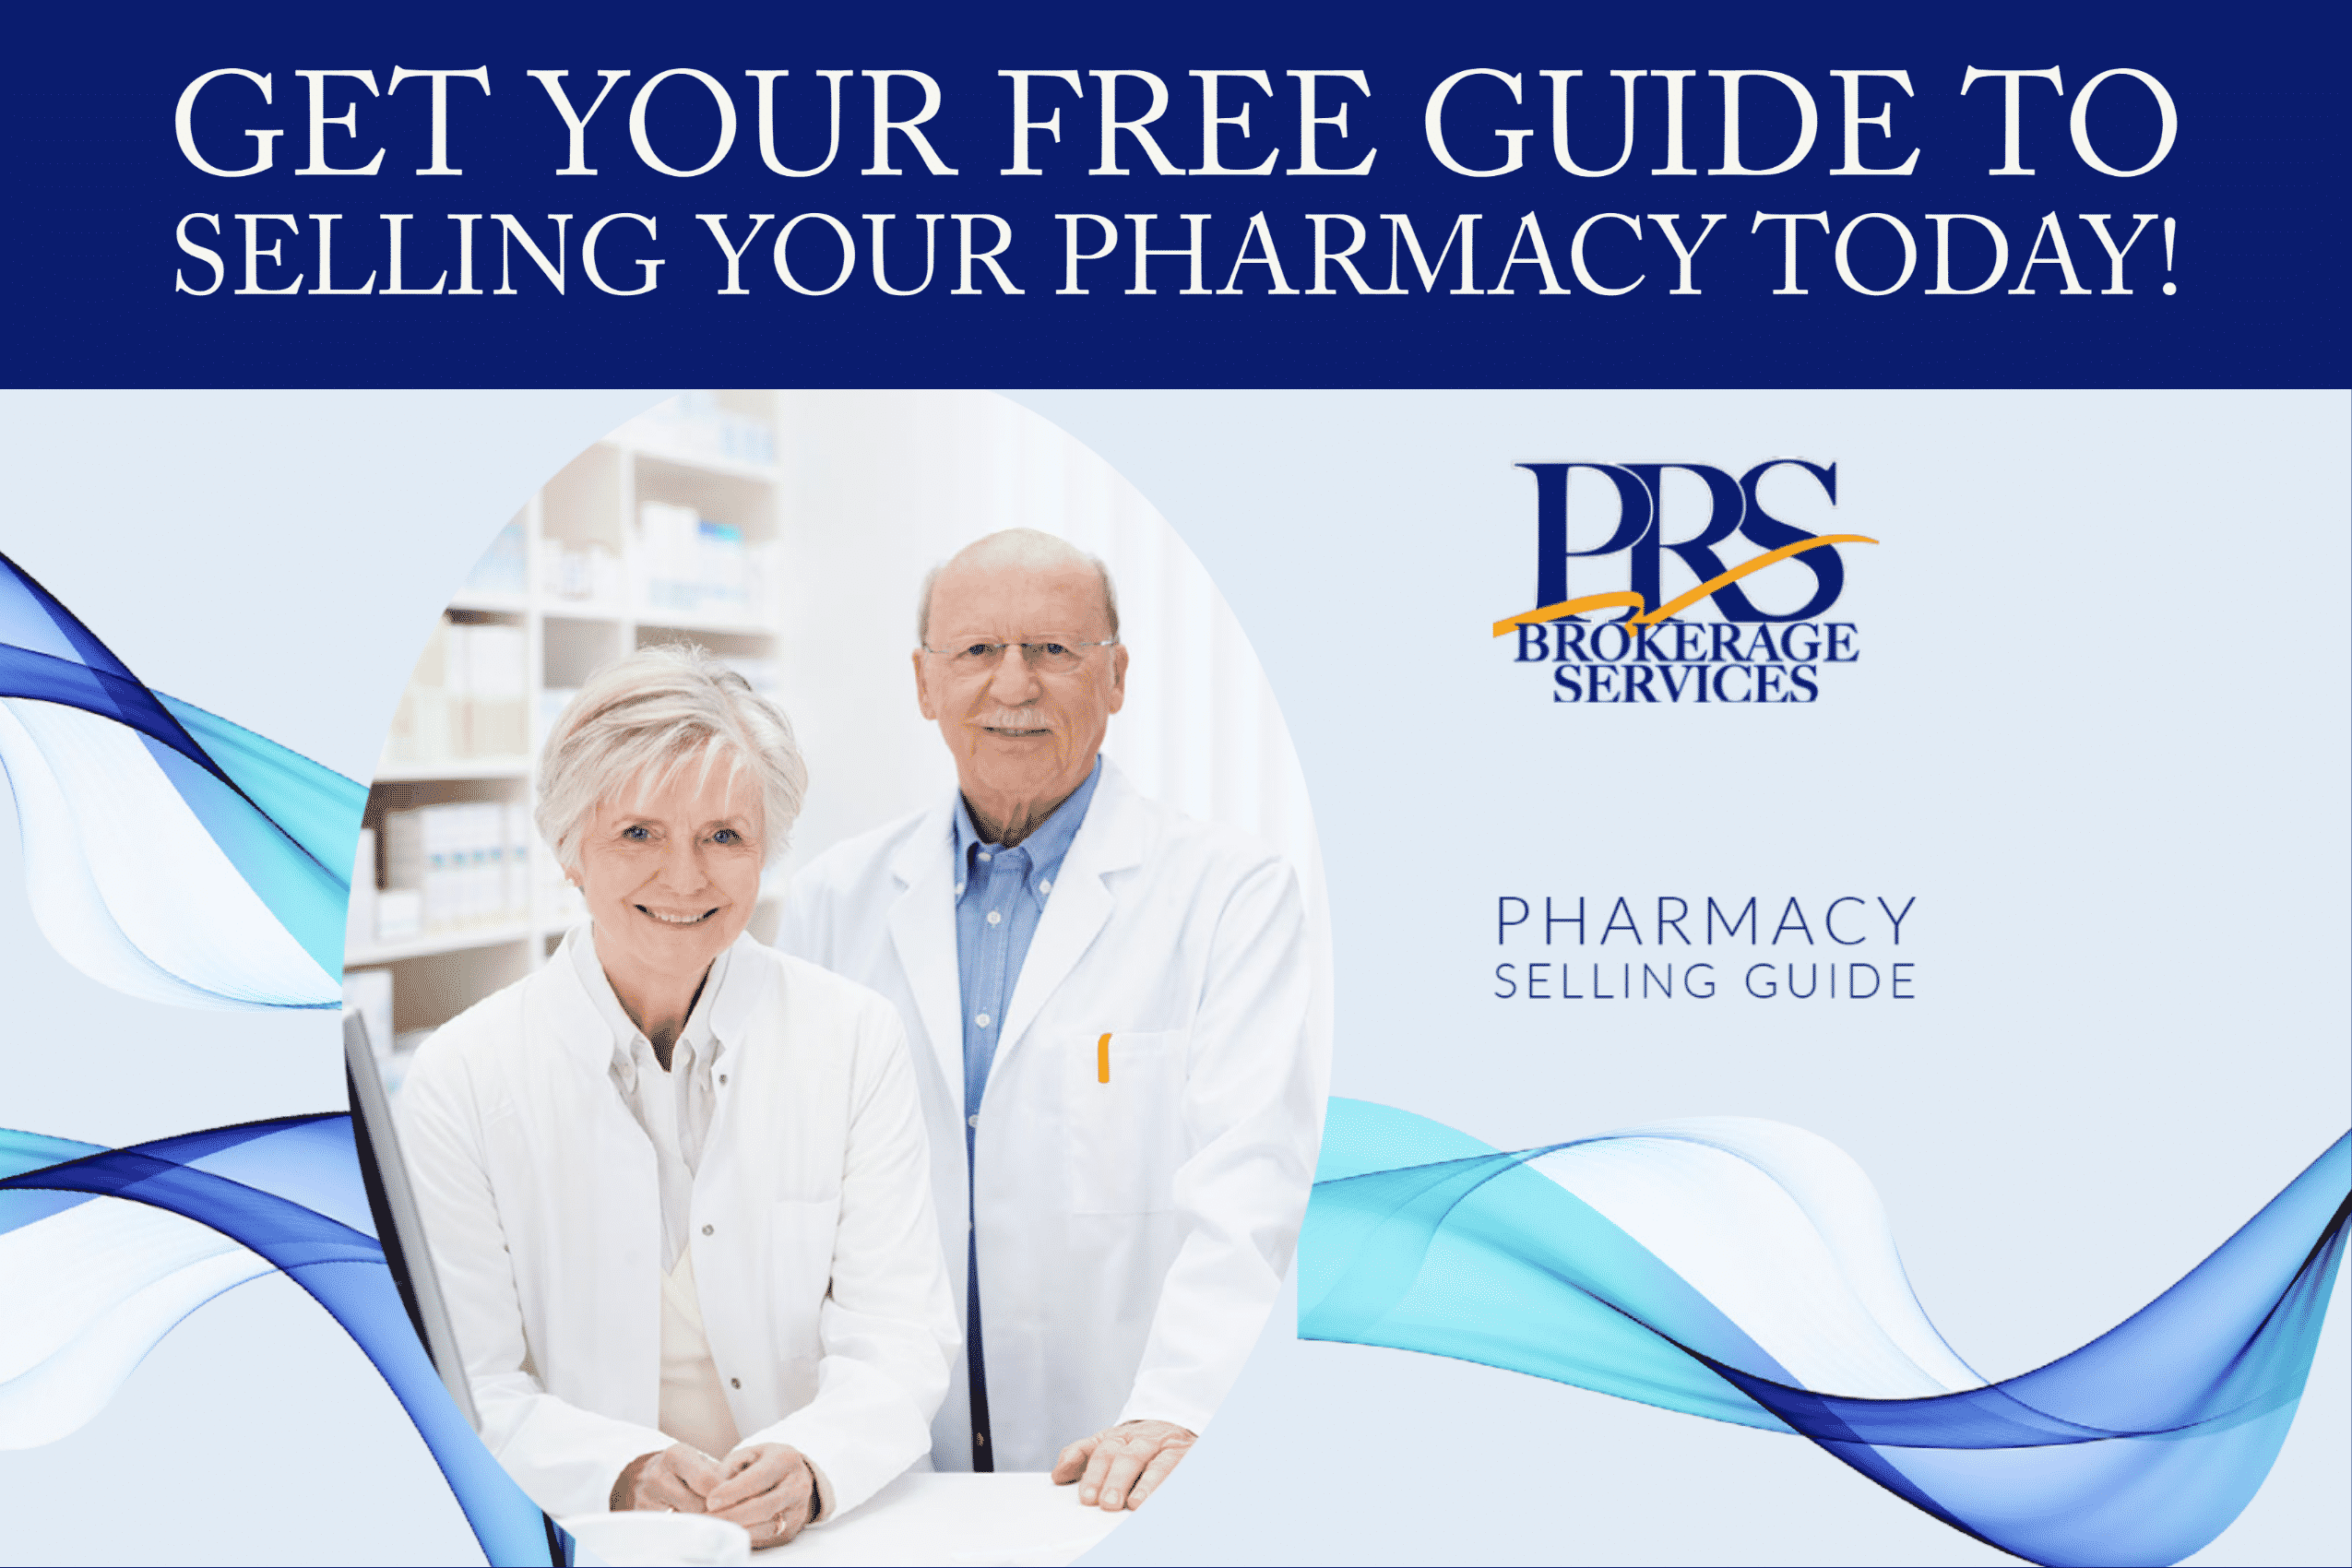 sell my independent pharmacy, how to sell a pharmacy, should I sell my pharmacy, buy sell pharmacy listings, when to sell your independent pharmacy